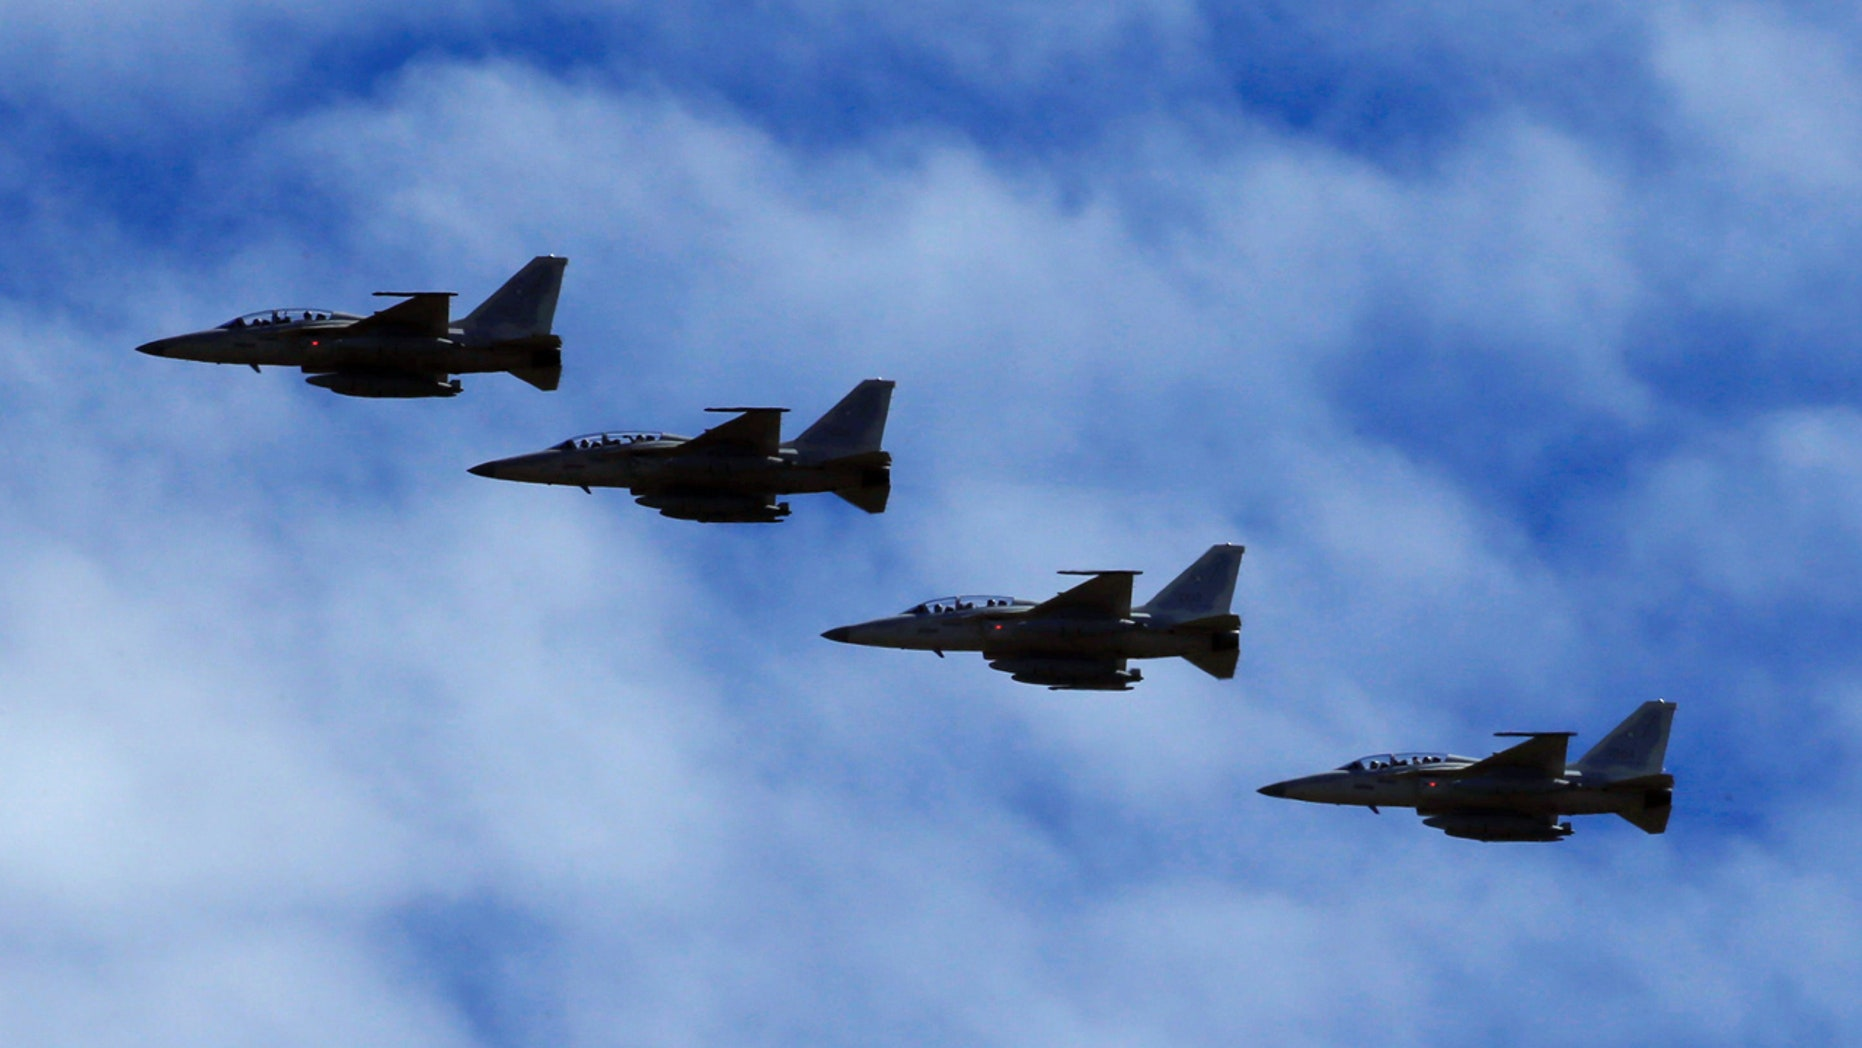 FA-50 fighter jets, newly purchased from South Korea, are escorted by fighter jets in the sky upon arrival in Clark air base, Angeles city, Pampanga province, north of Manila, Philippines December 1, 2016.  REUTERS/Romeo Ranoco - RTSU4O9